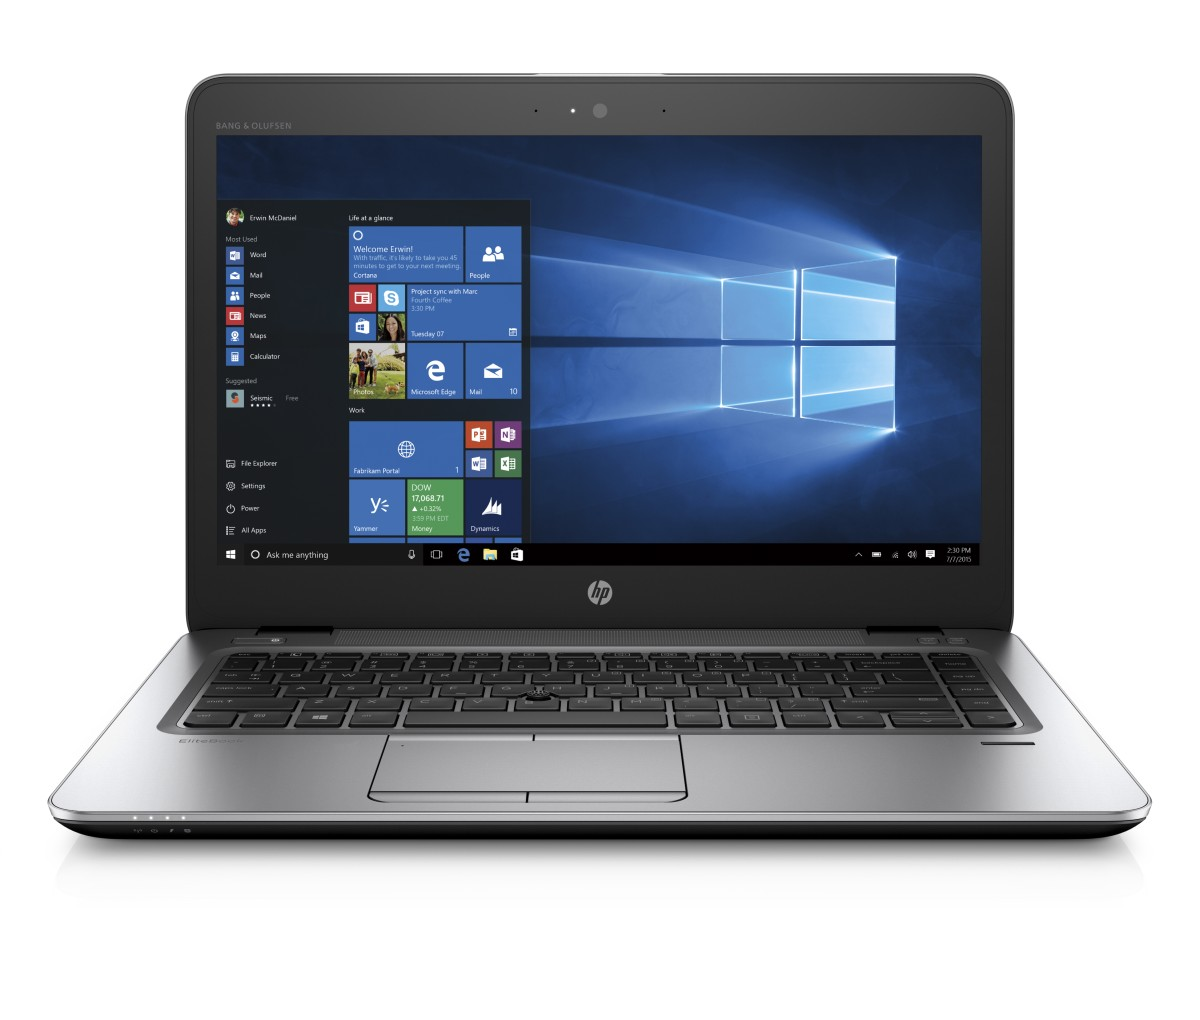 "HP EliteBook 840 G4 i7-7500U/8GB/512GB SSD + 2,5'' slot/14"" FHD/ backlit keyb /Win 10 Pro"